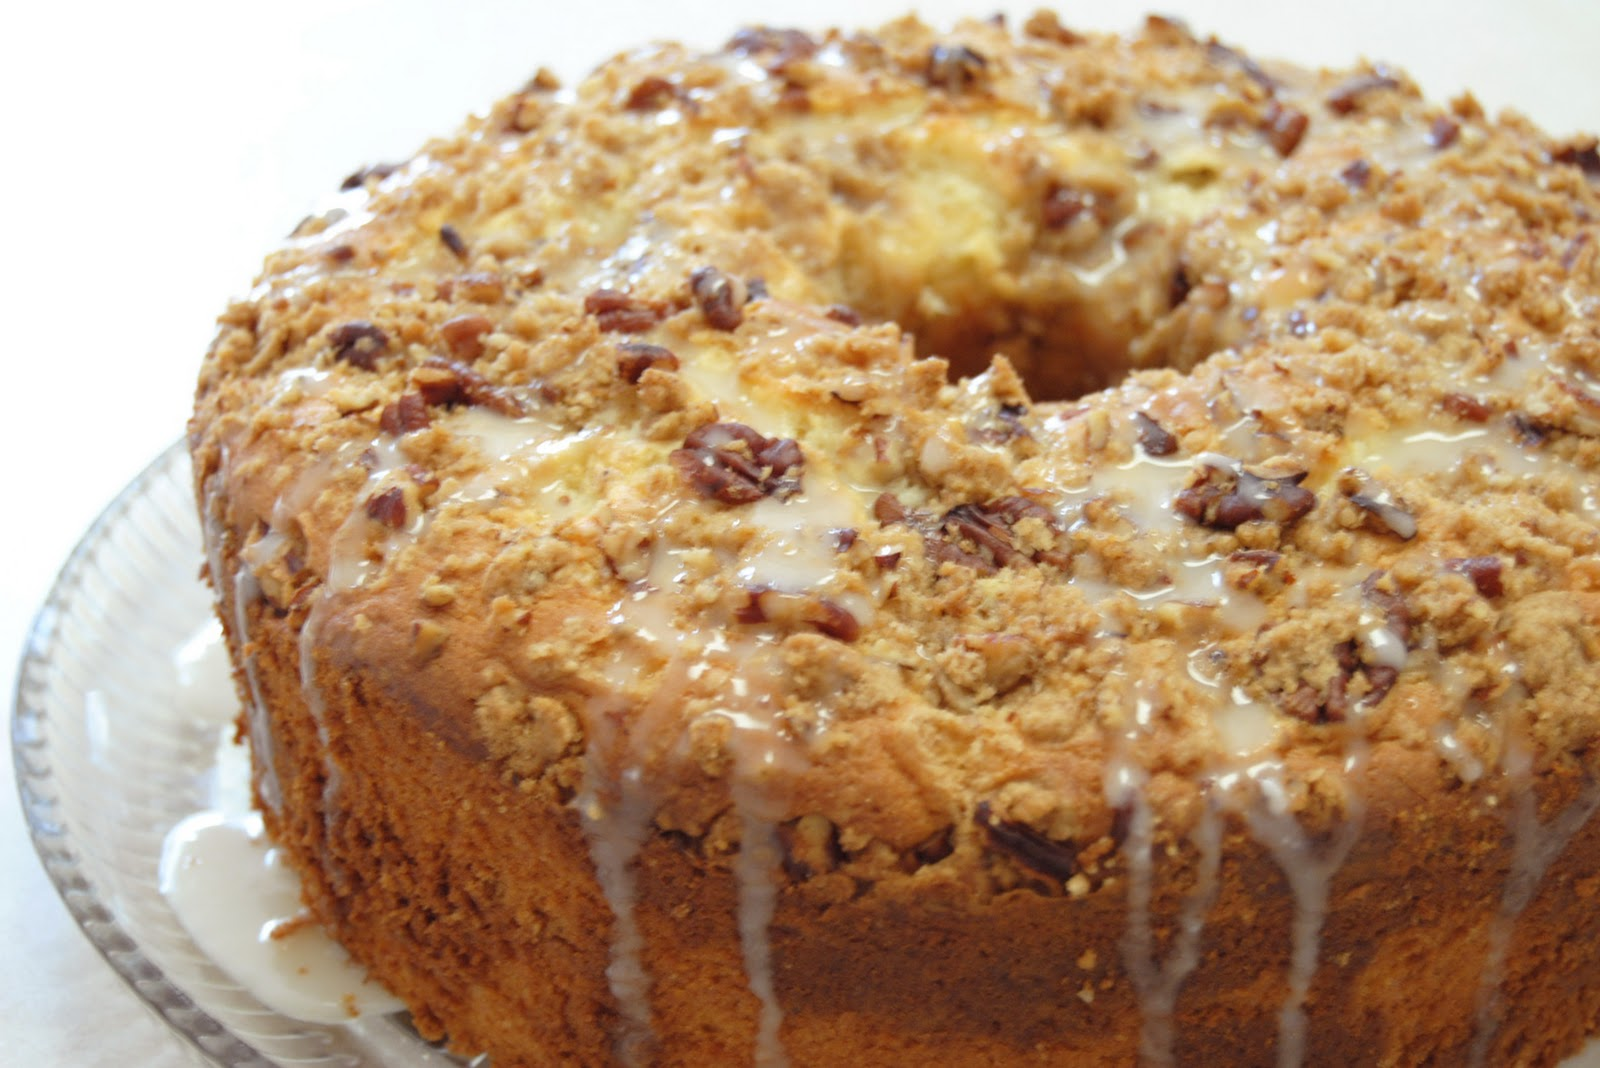 thebakedbeen: sour cream coffee cake